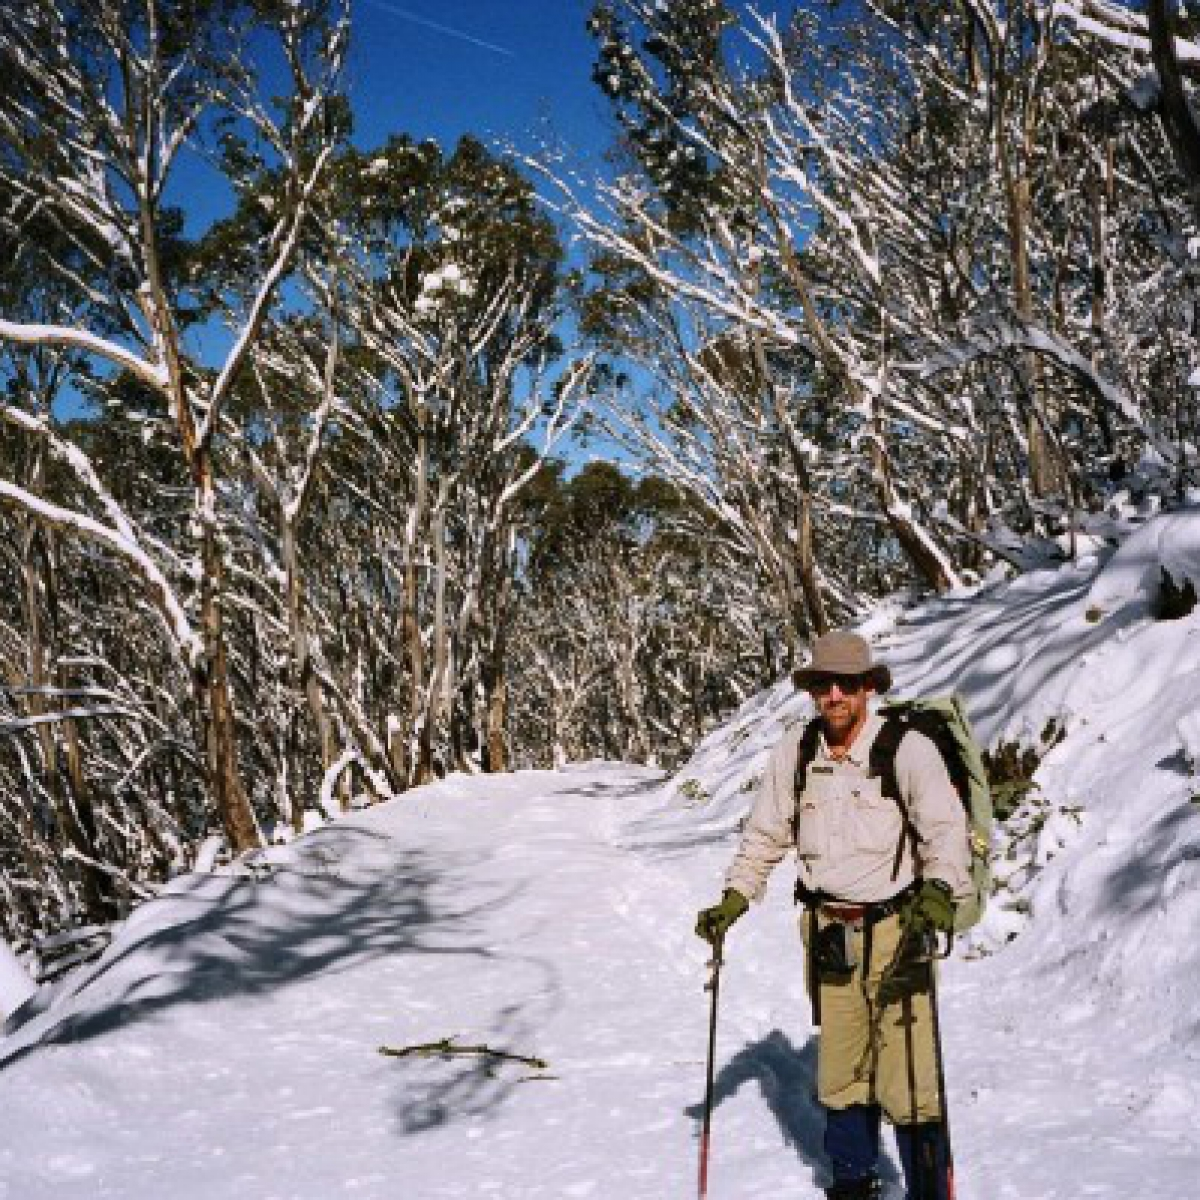 Mike Bremers, Mt Franklin Rd, Namadgi NP